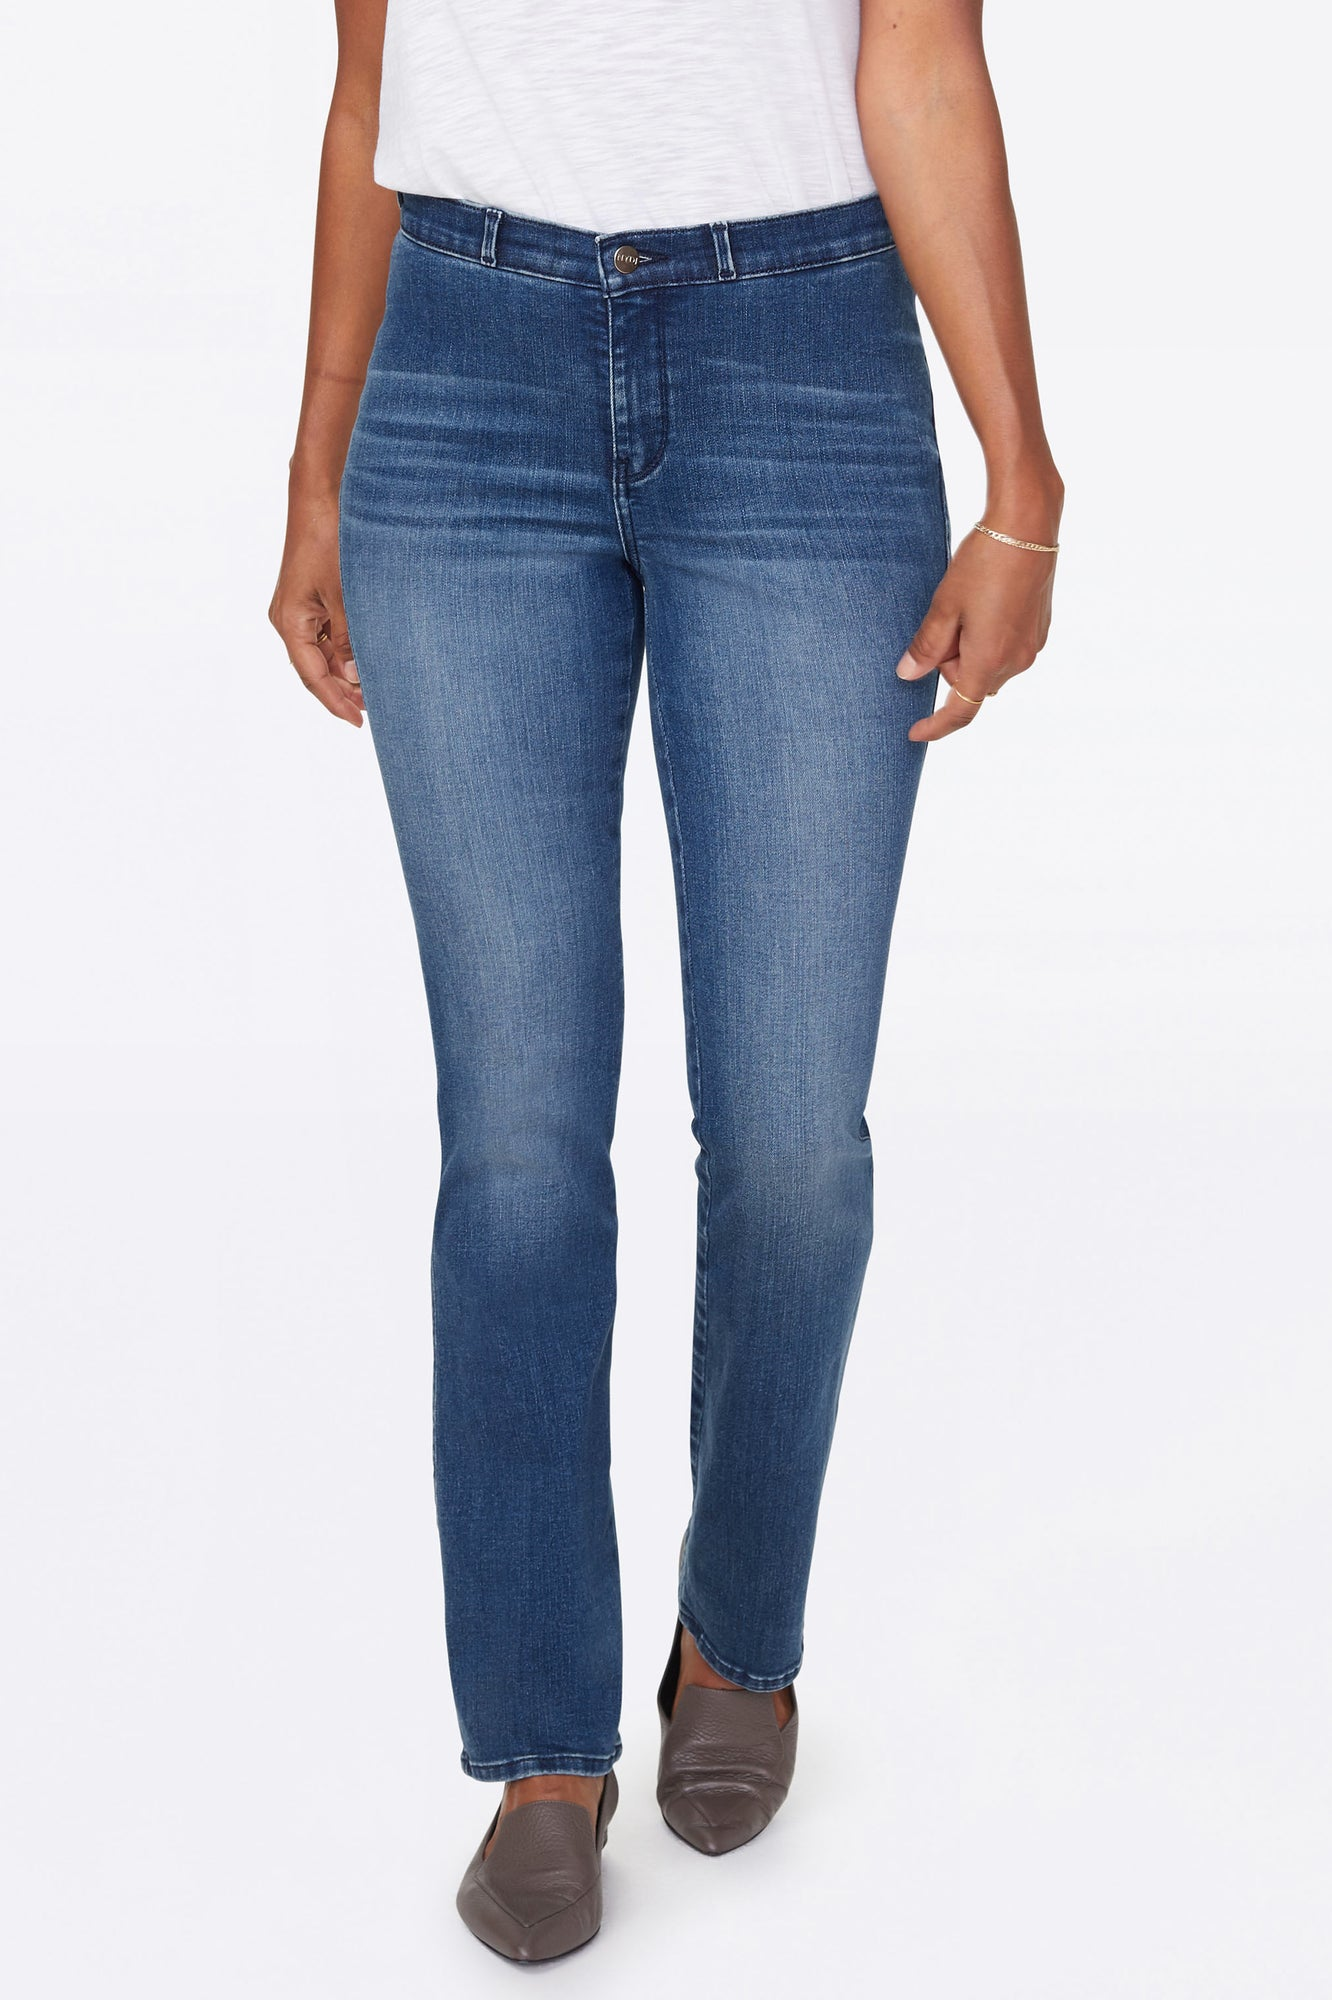 Barbara Bootcut Jeans - MELOY